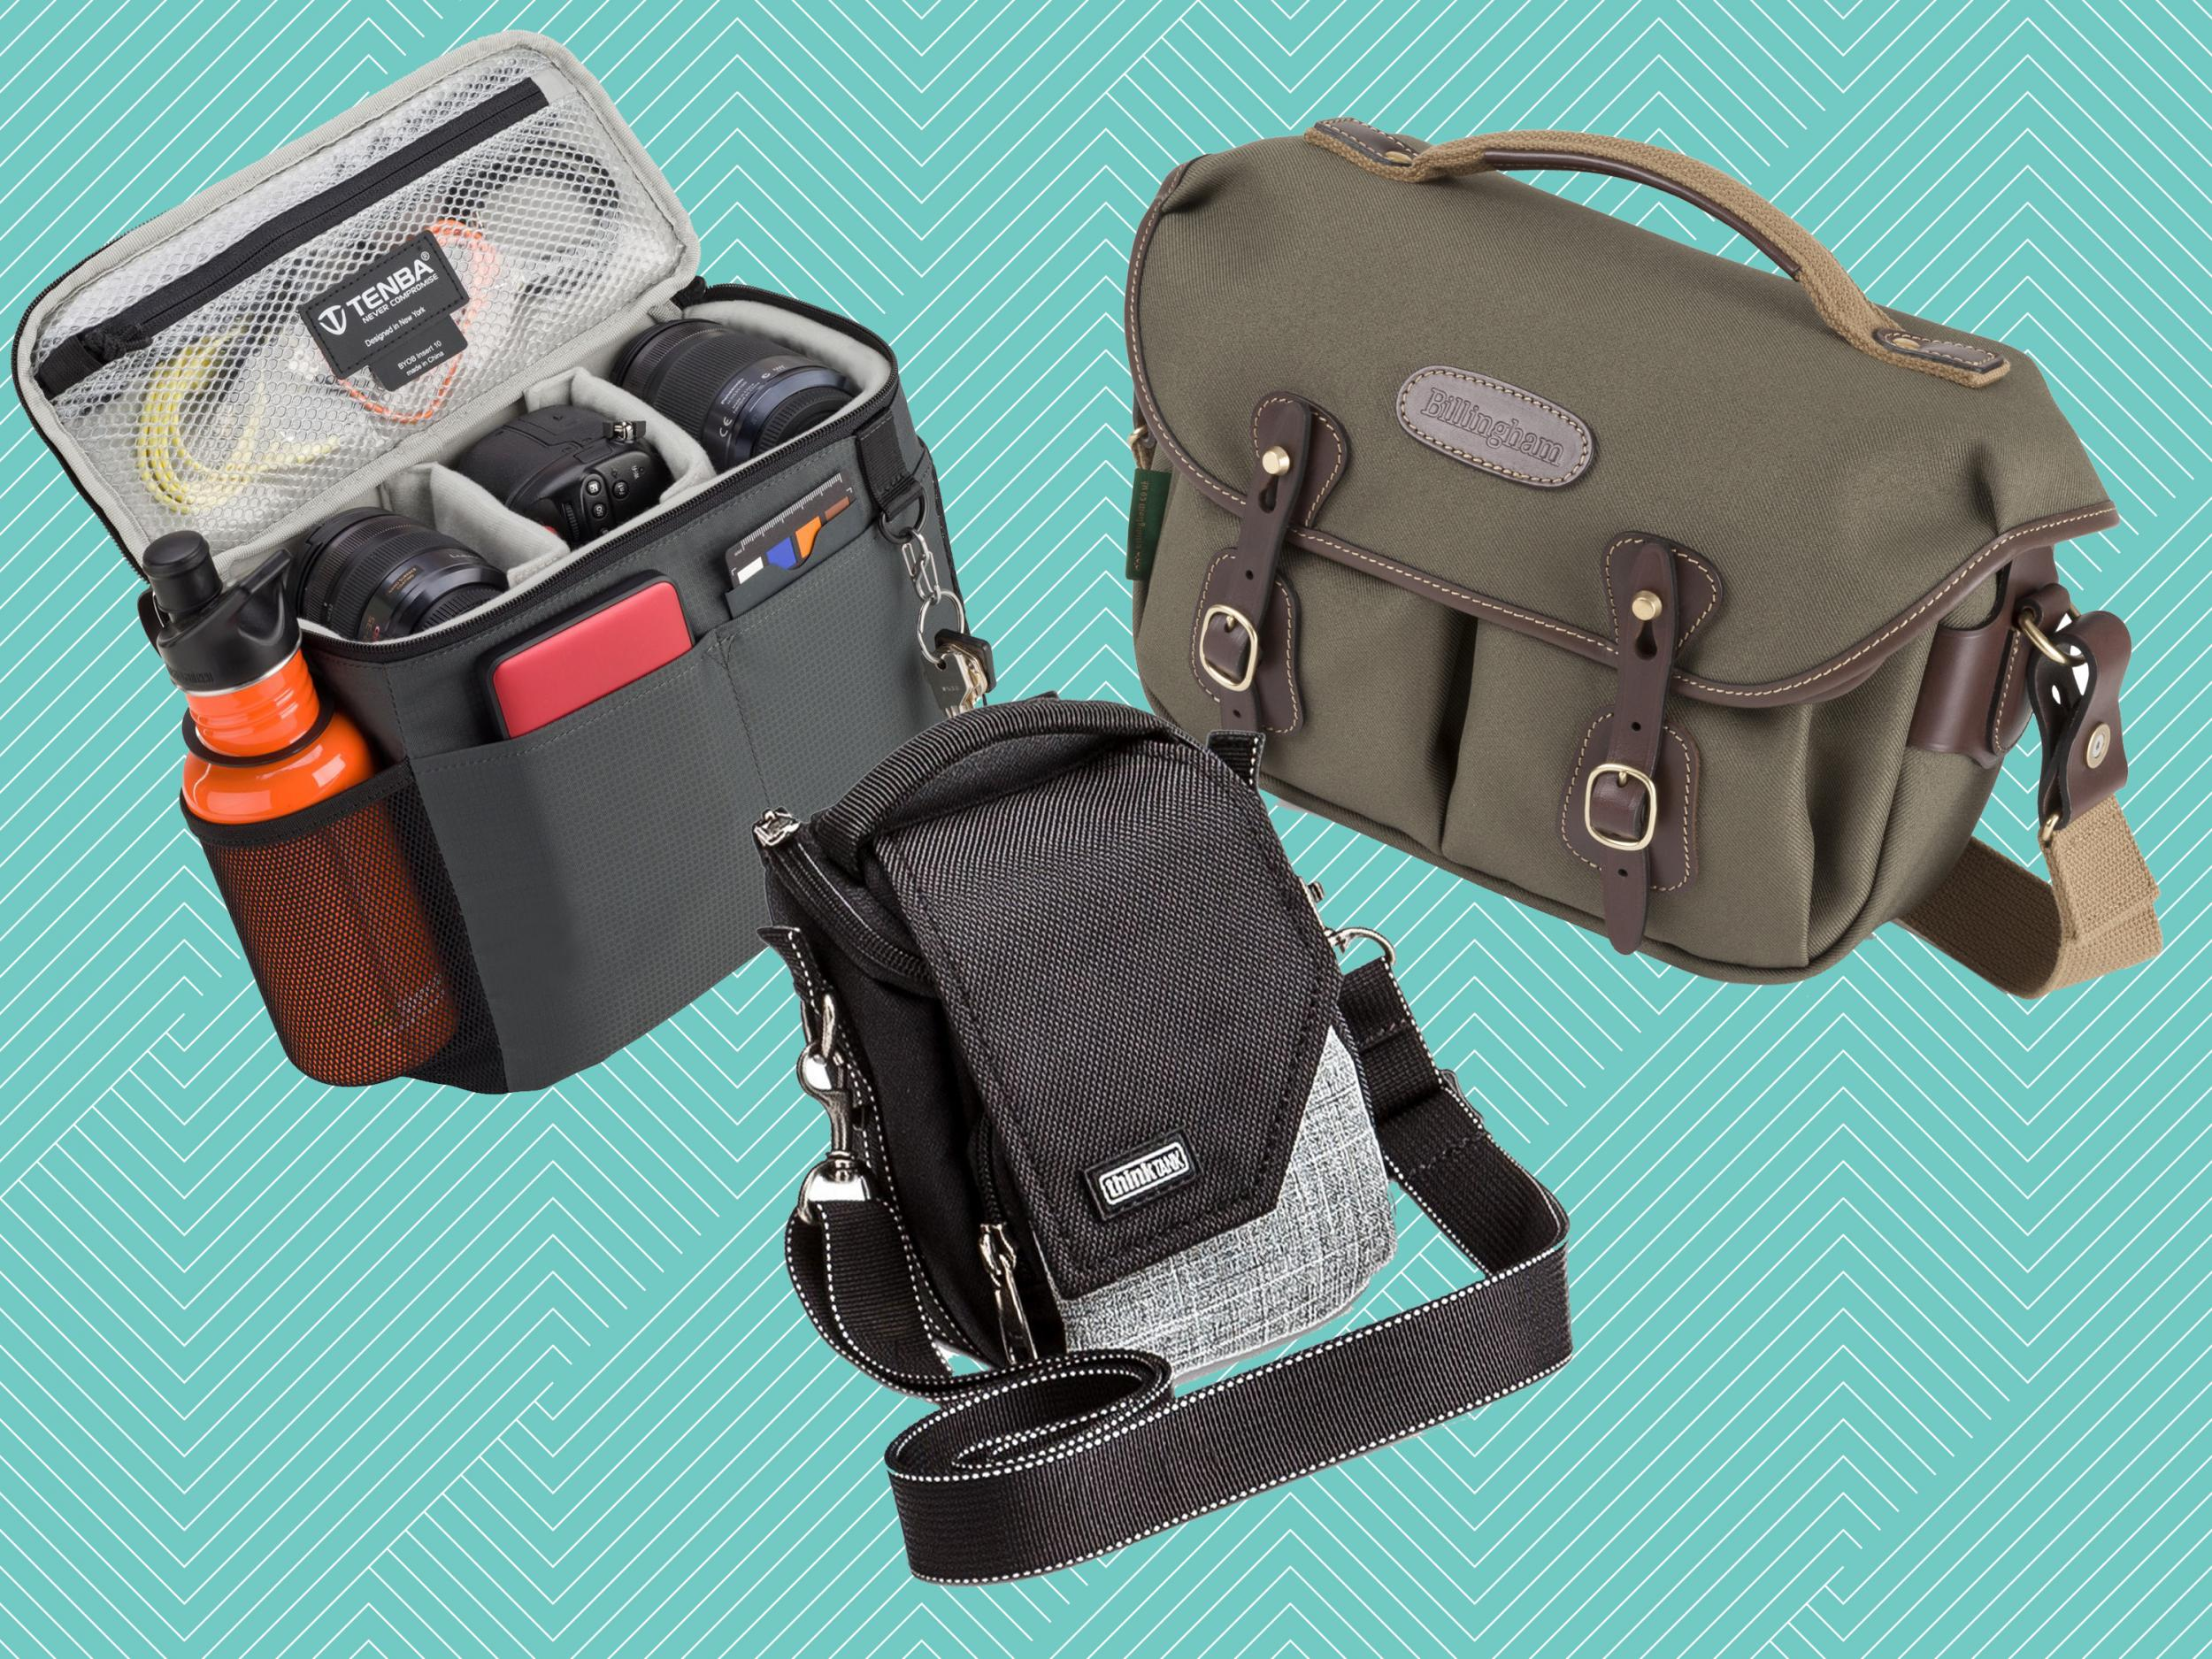 Best camera bags for DSLRs and CSCs: Backpacks, messengers and cross